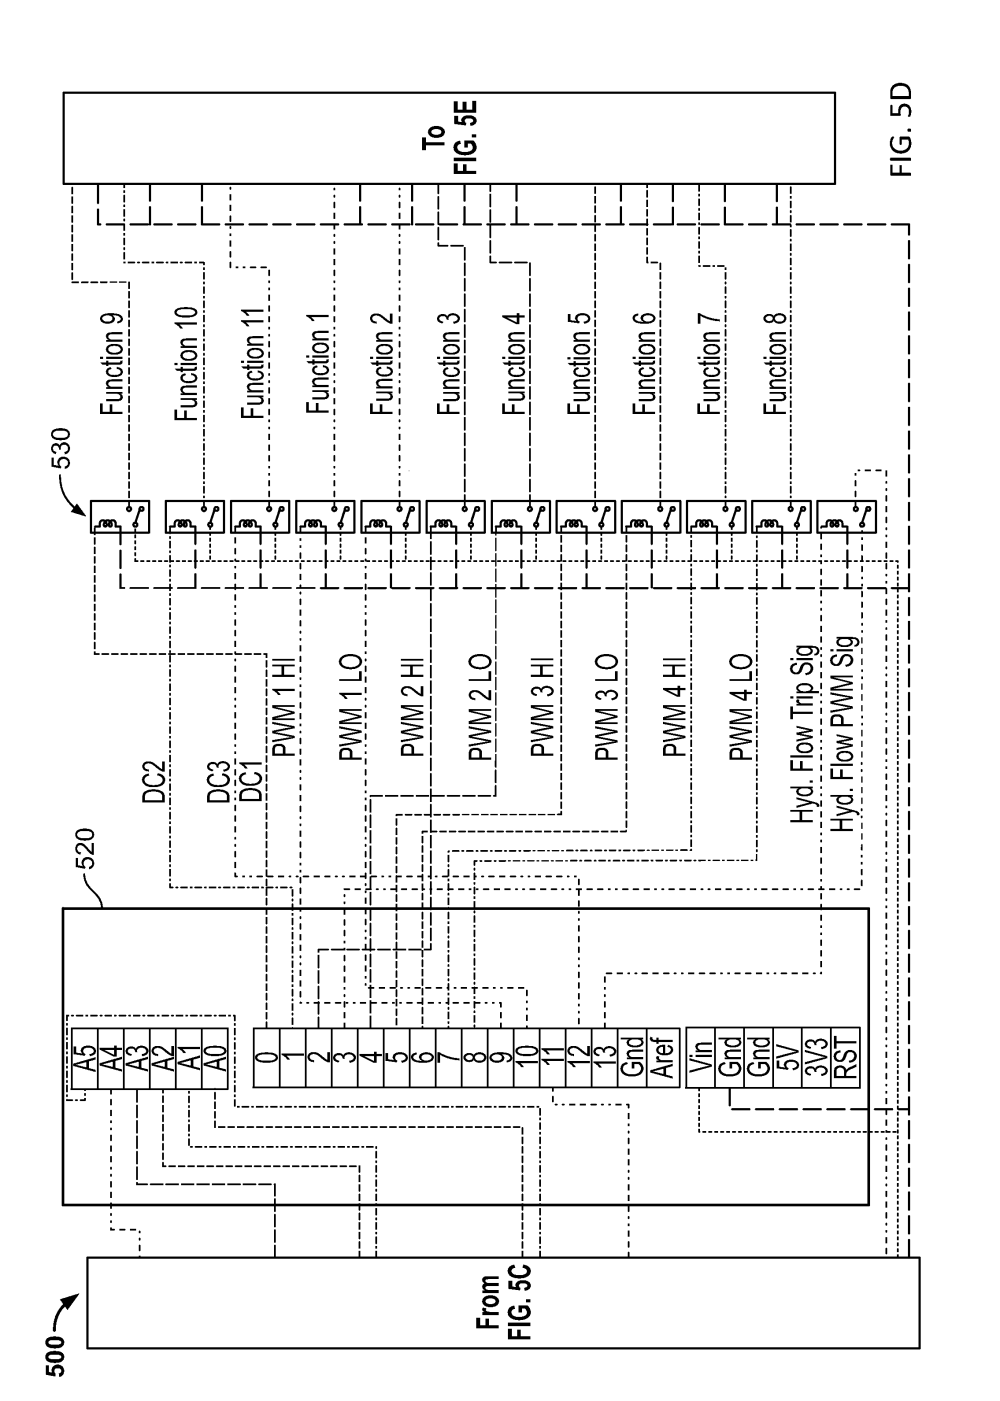 medium resolution of us20130274925a1 20131017 d00008 patent us20130274925 systems and methods for attachment control bobcat 14 pin connector wiring